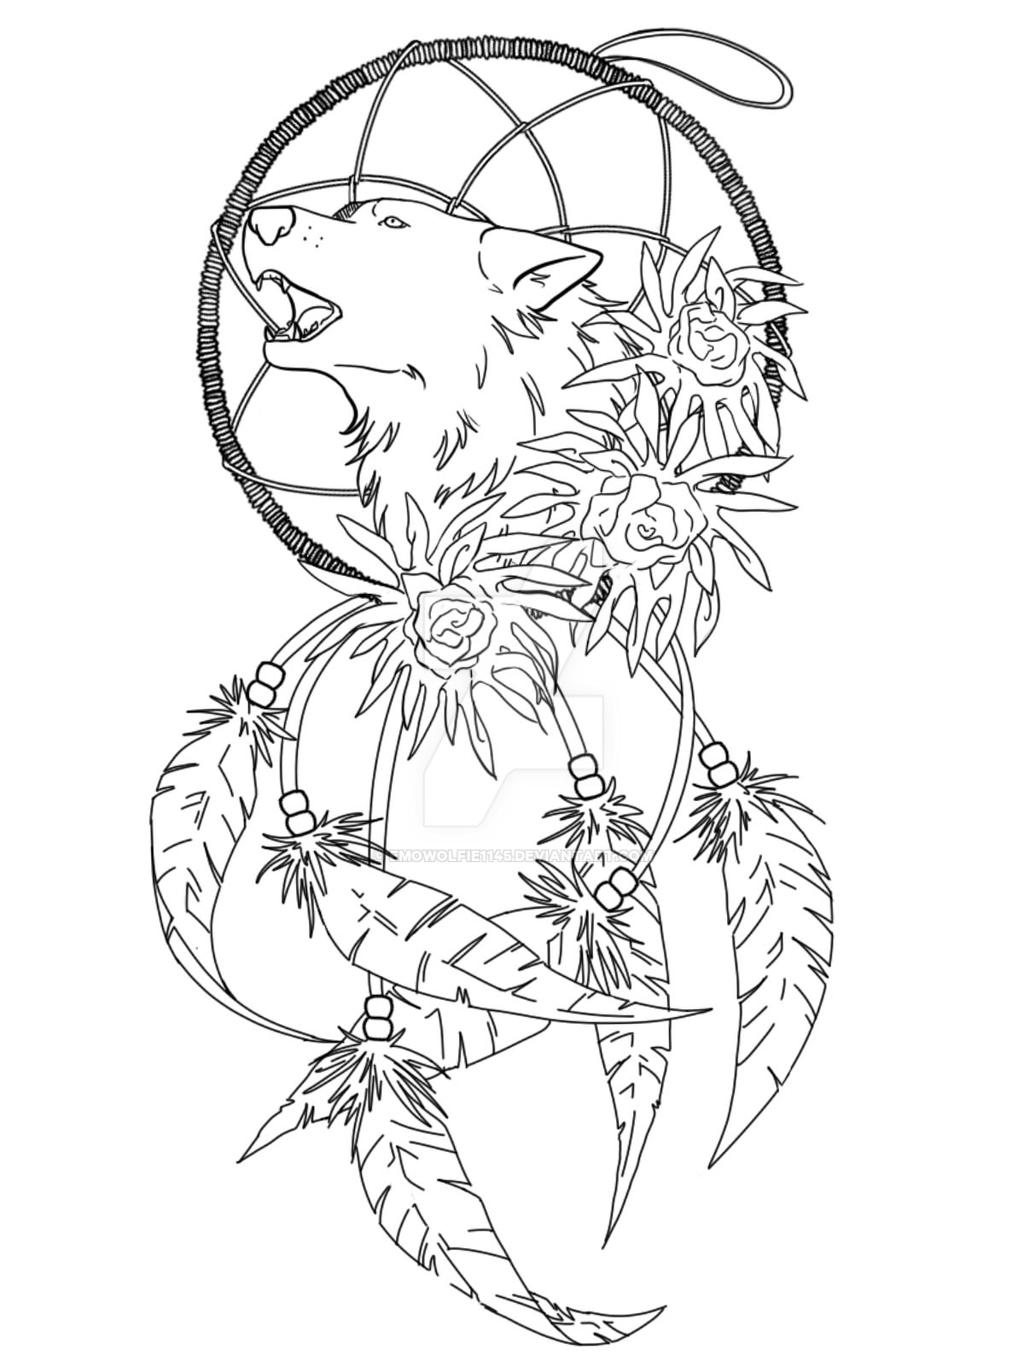 Wolf dreamcatcher tattoo idea by emowolfie1145 on deviantart for Dreamcatcher tattoo template